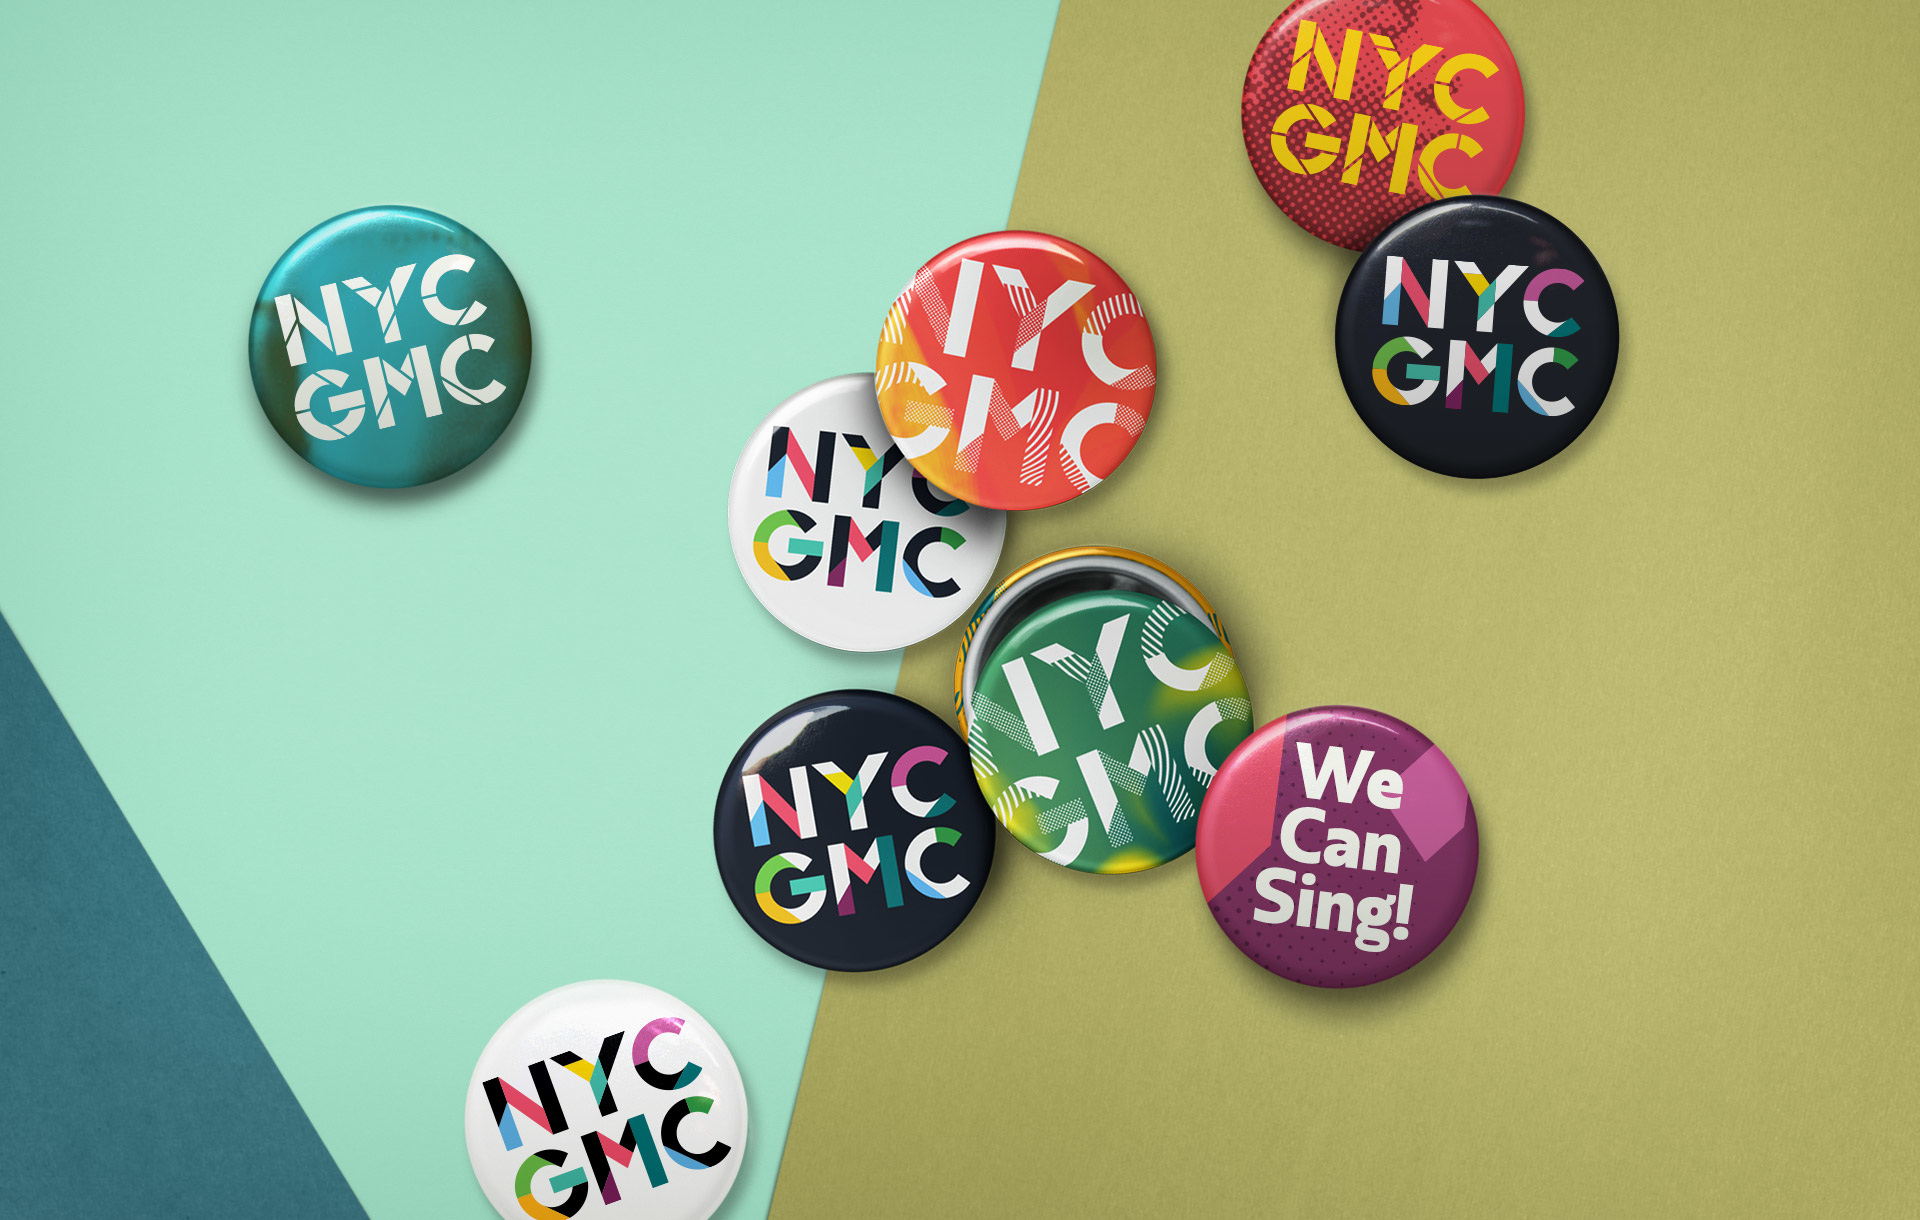 NYCGMC-08-Buttons